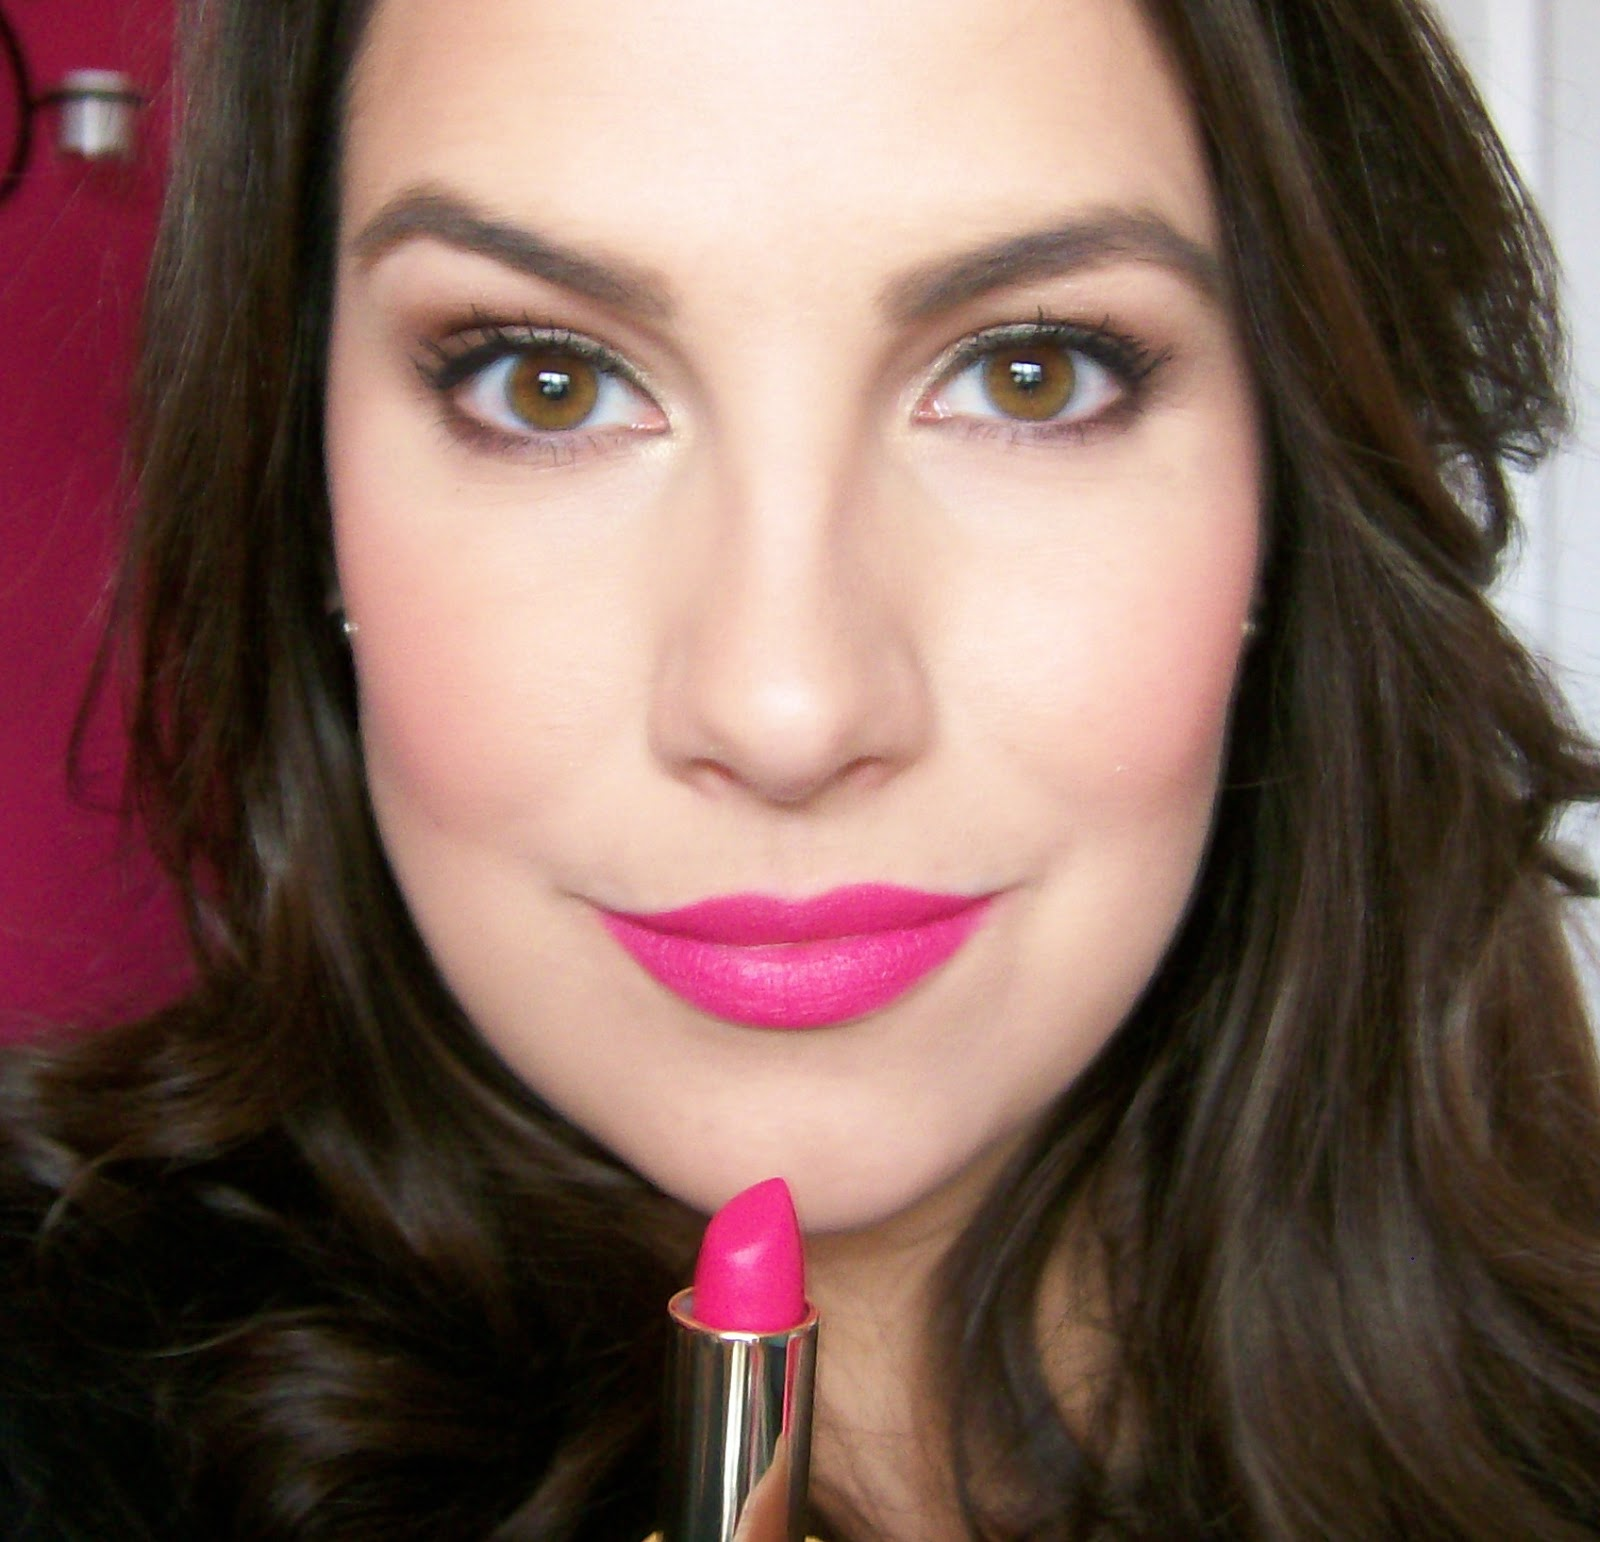 Milani Color Statement Lipstick: Pinks & Corals